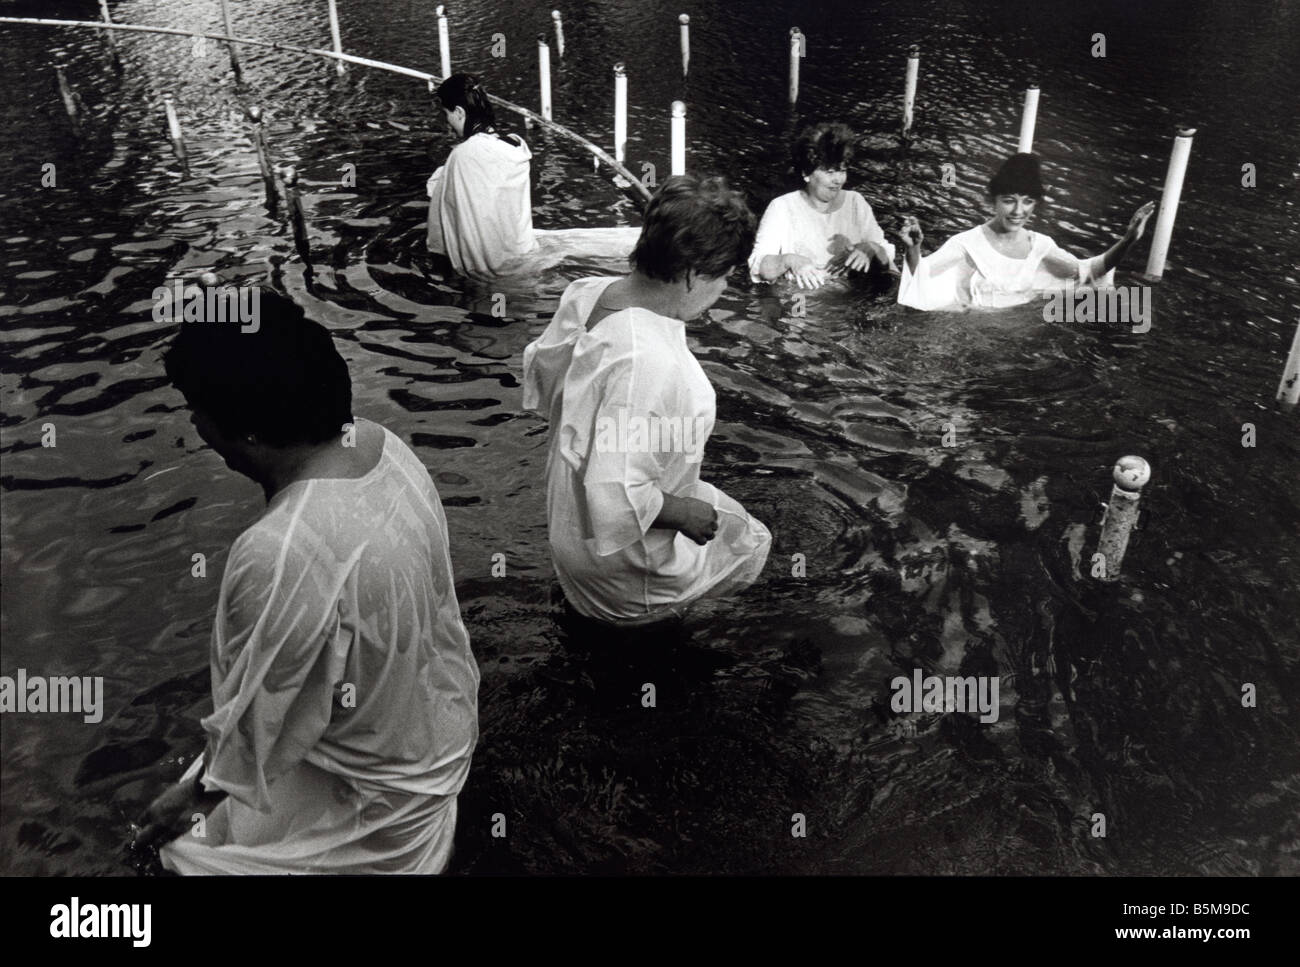 Pilgrims being baptised in the River Jordan, Kibbutz Kinneret, Israel 1999 - Stock Image